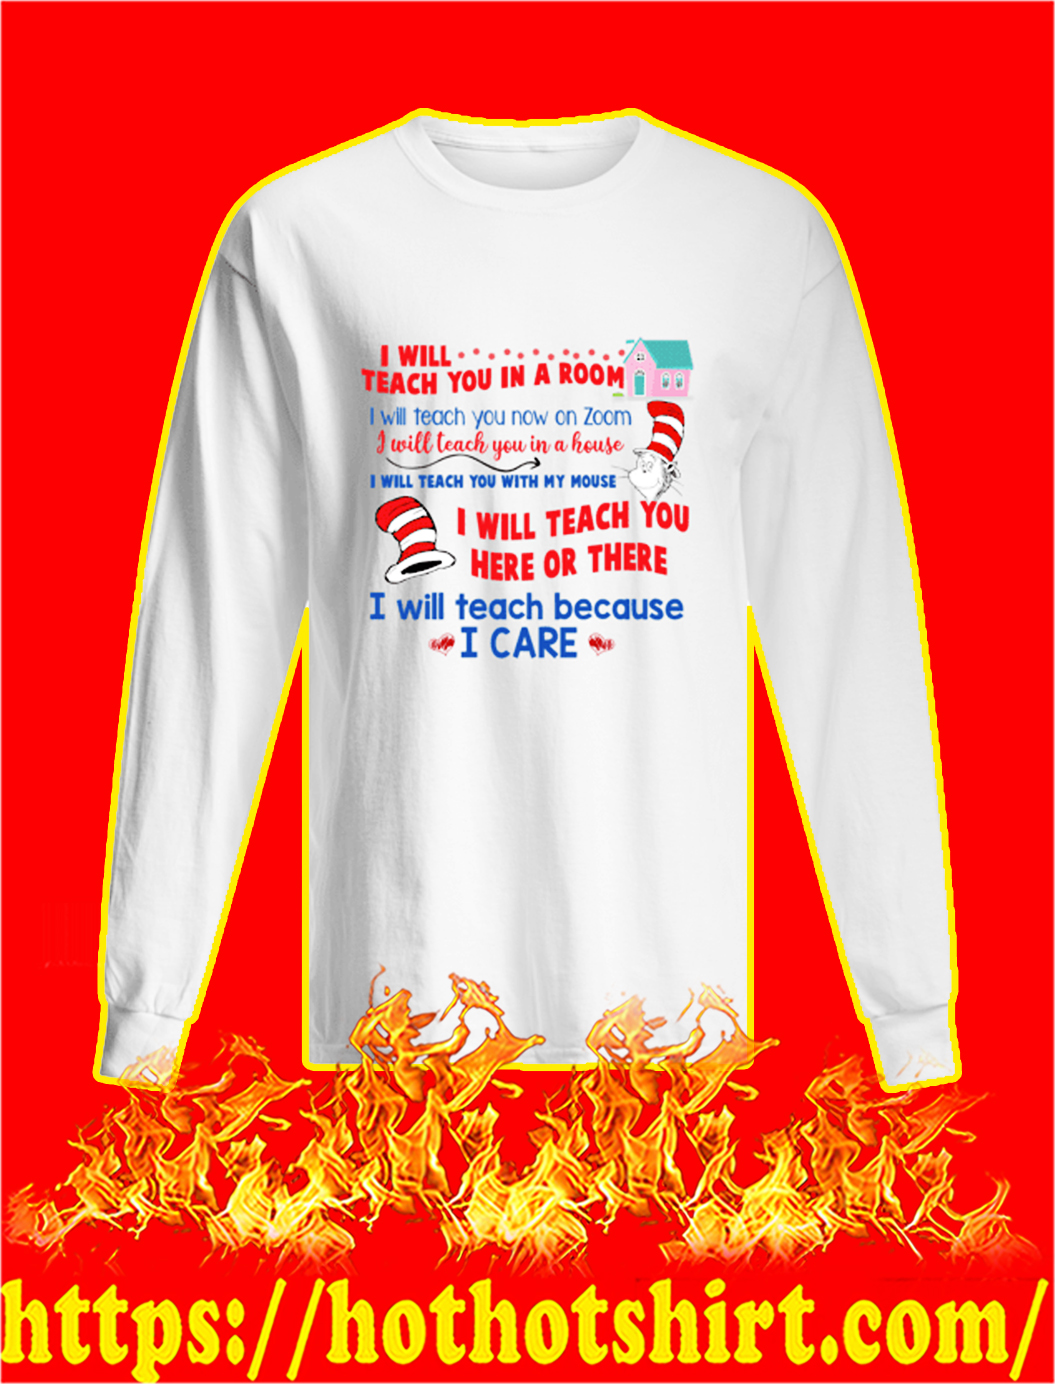 Dr Seuss I will teach you in a room I will teach you now on zoom longsleeve tee